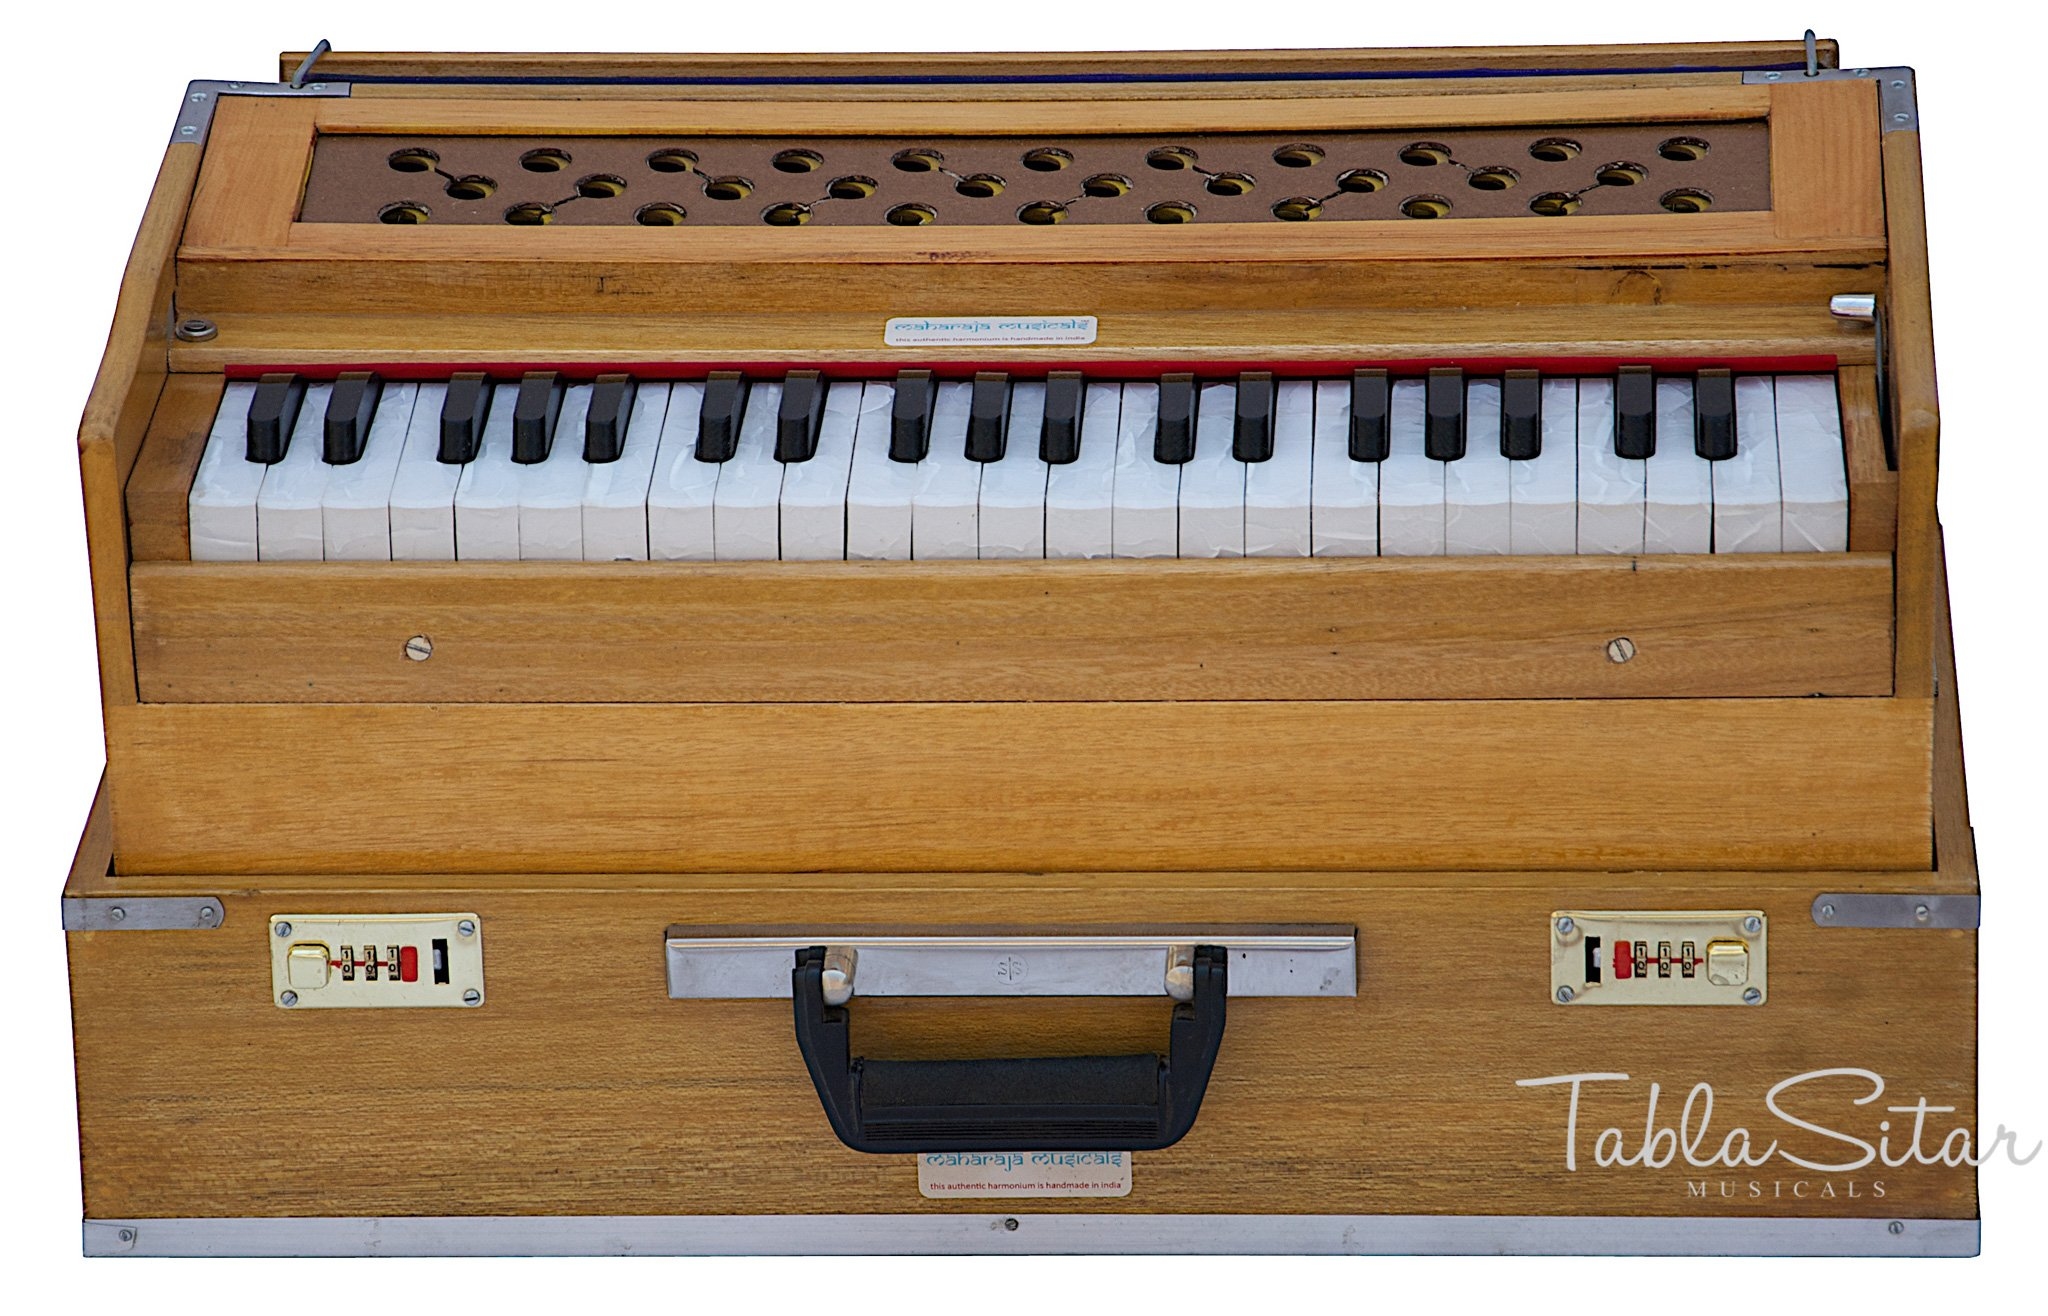 MAHARAJA Folding Harmonium No. 6000n - Buy 3½ Octave - Natural Color With Coupler, Come with Book & Bag - Tuned to A440 (PDI-BFC)